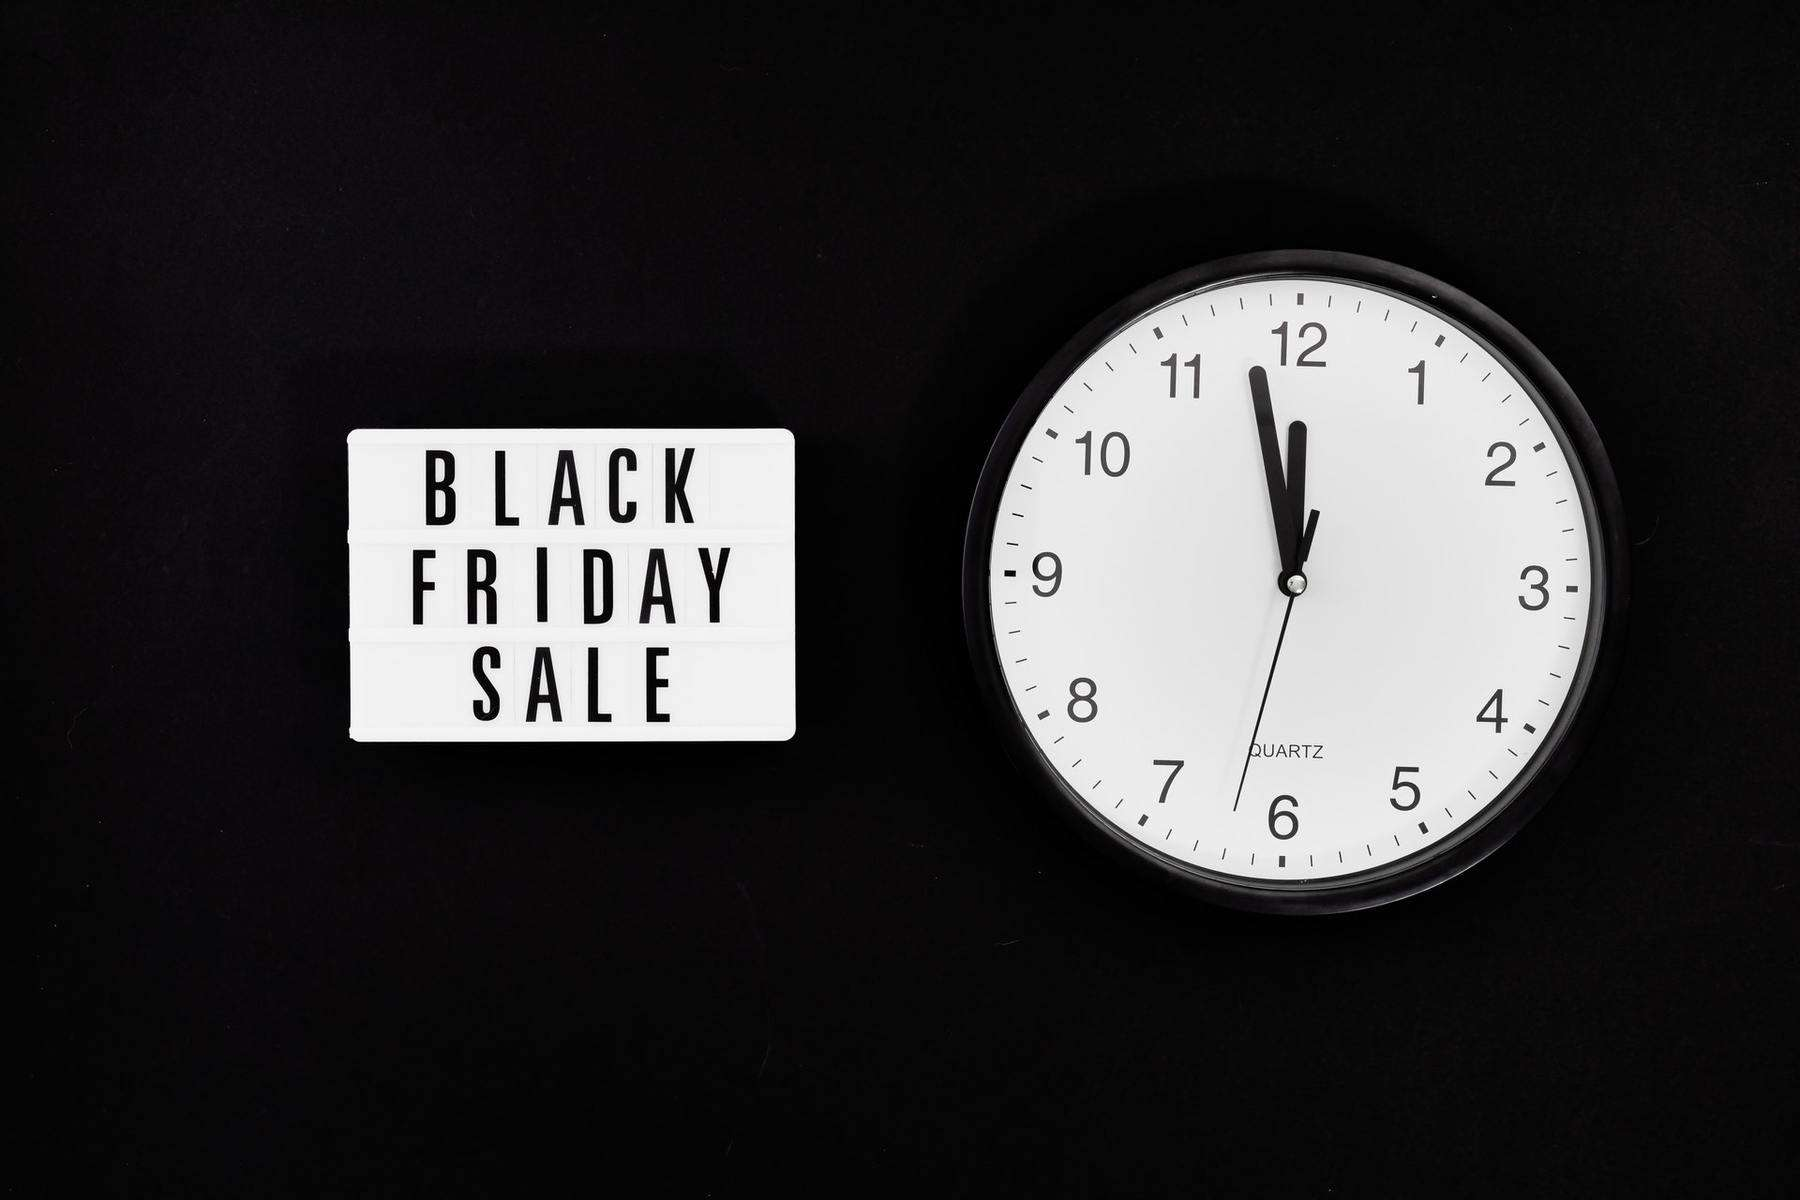 Black Friday sale sign and clock